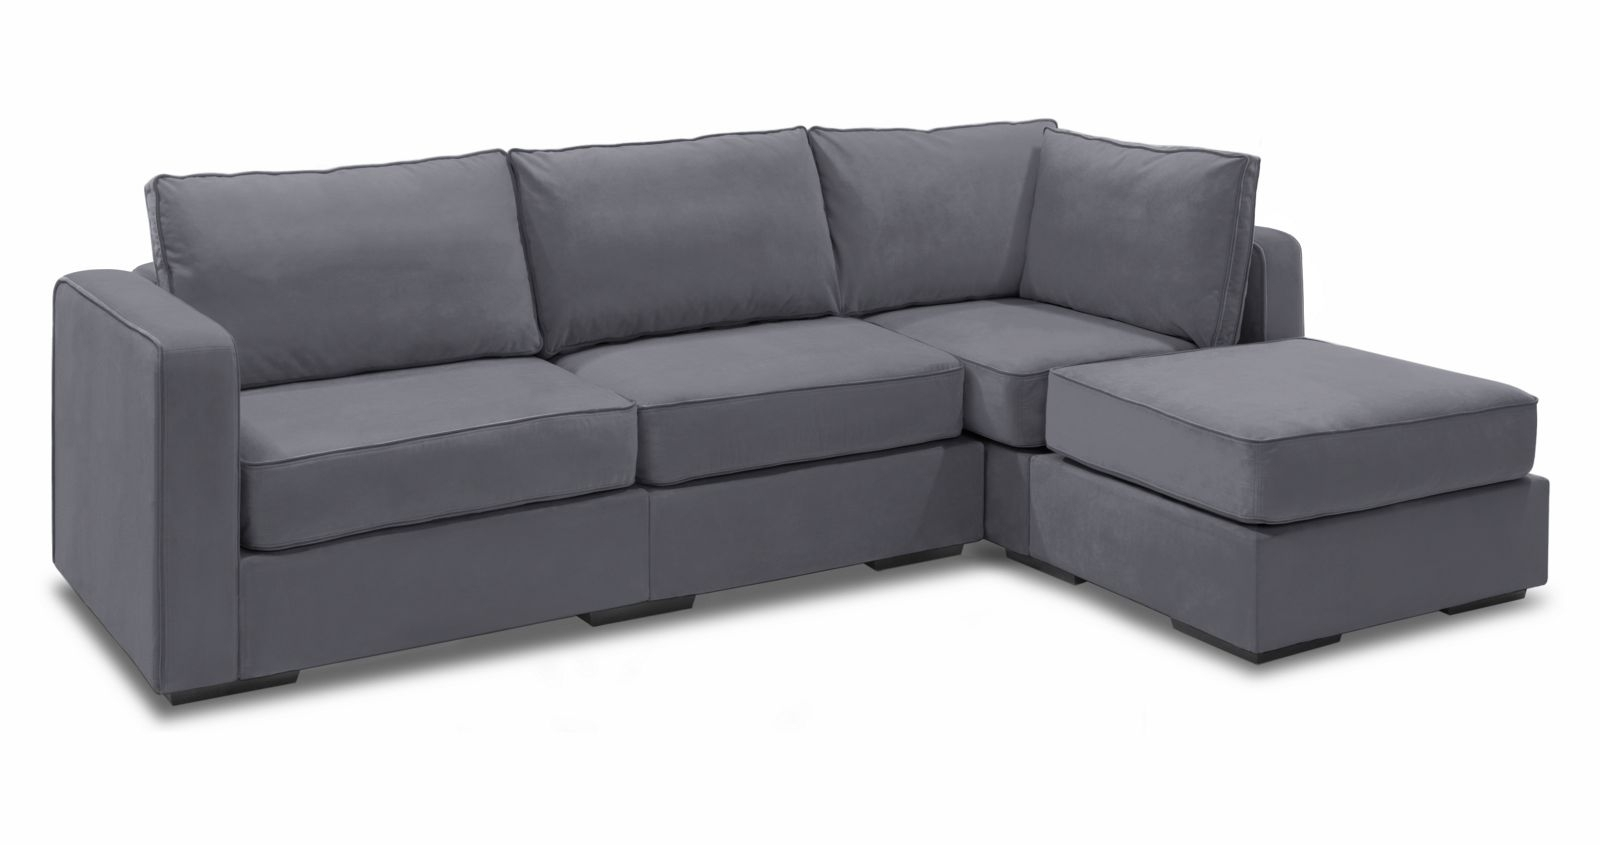 Chaise Sectional Couch Seats Sides Lovesac Main Pdp Locks Dollar pertaining to Norfolk Grey 6 Piece Sectionals With Raf Chaise (Image 6 of 30)